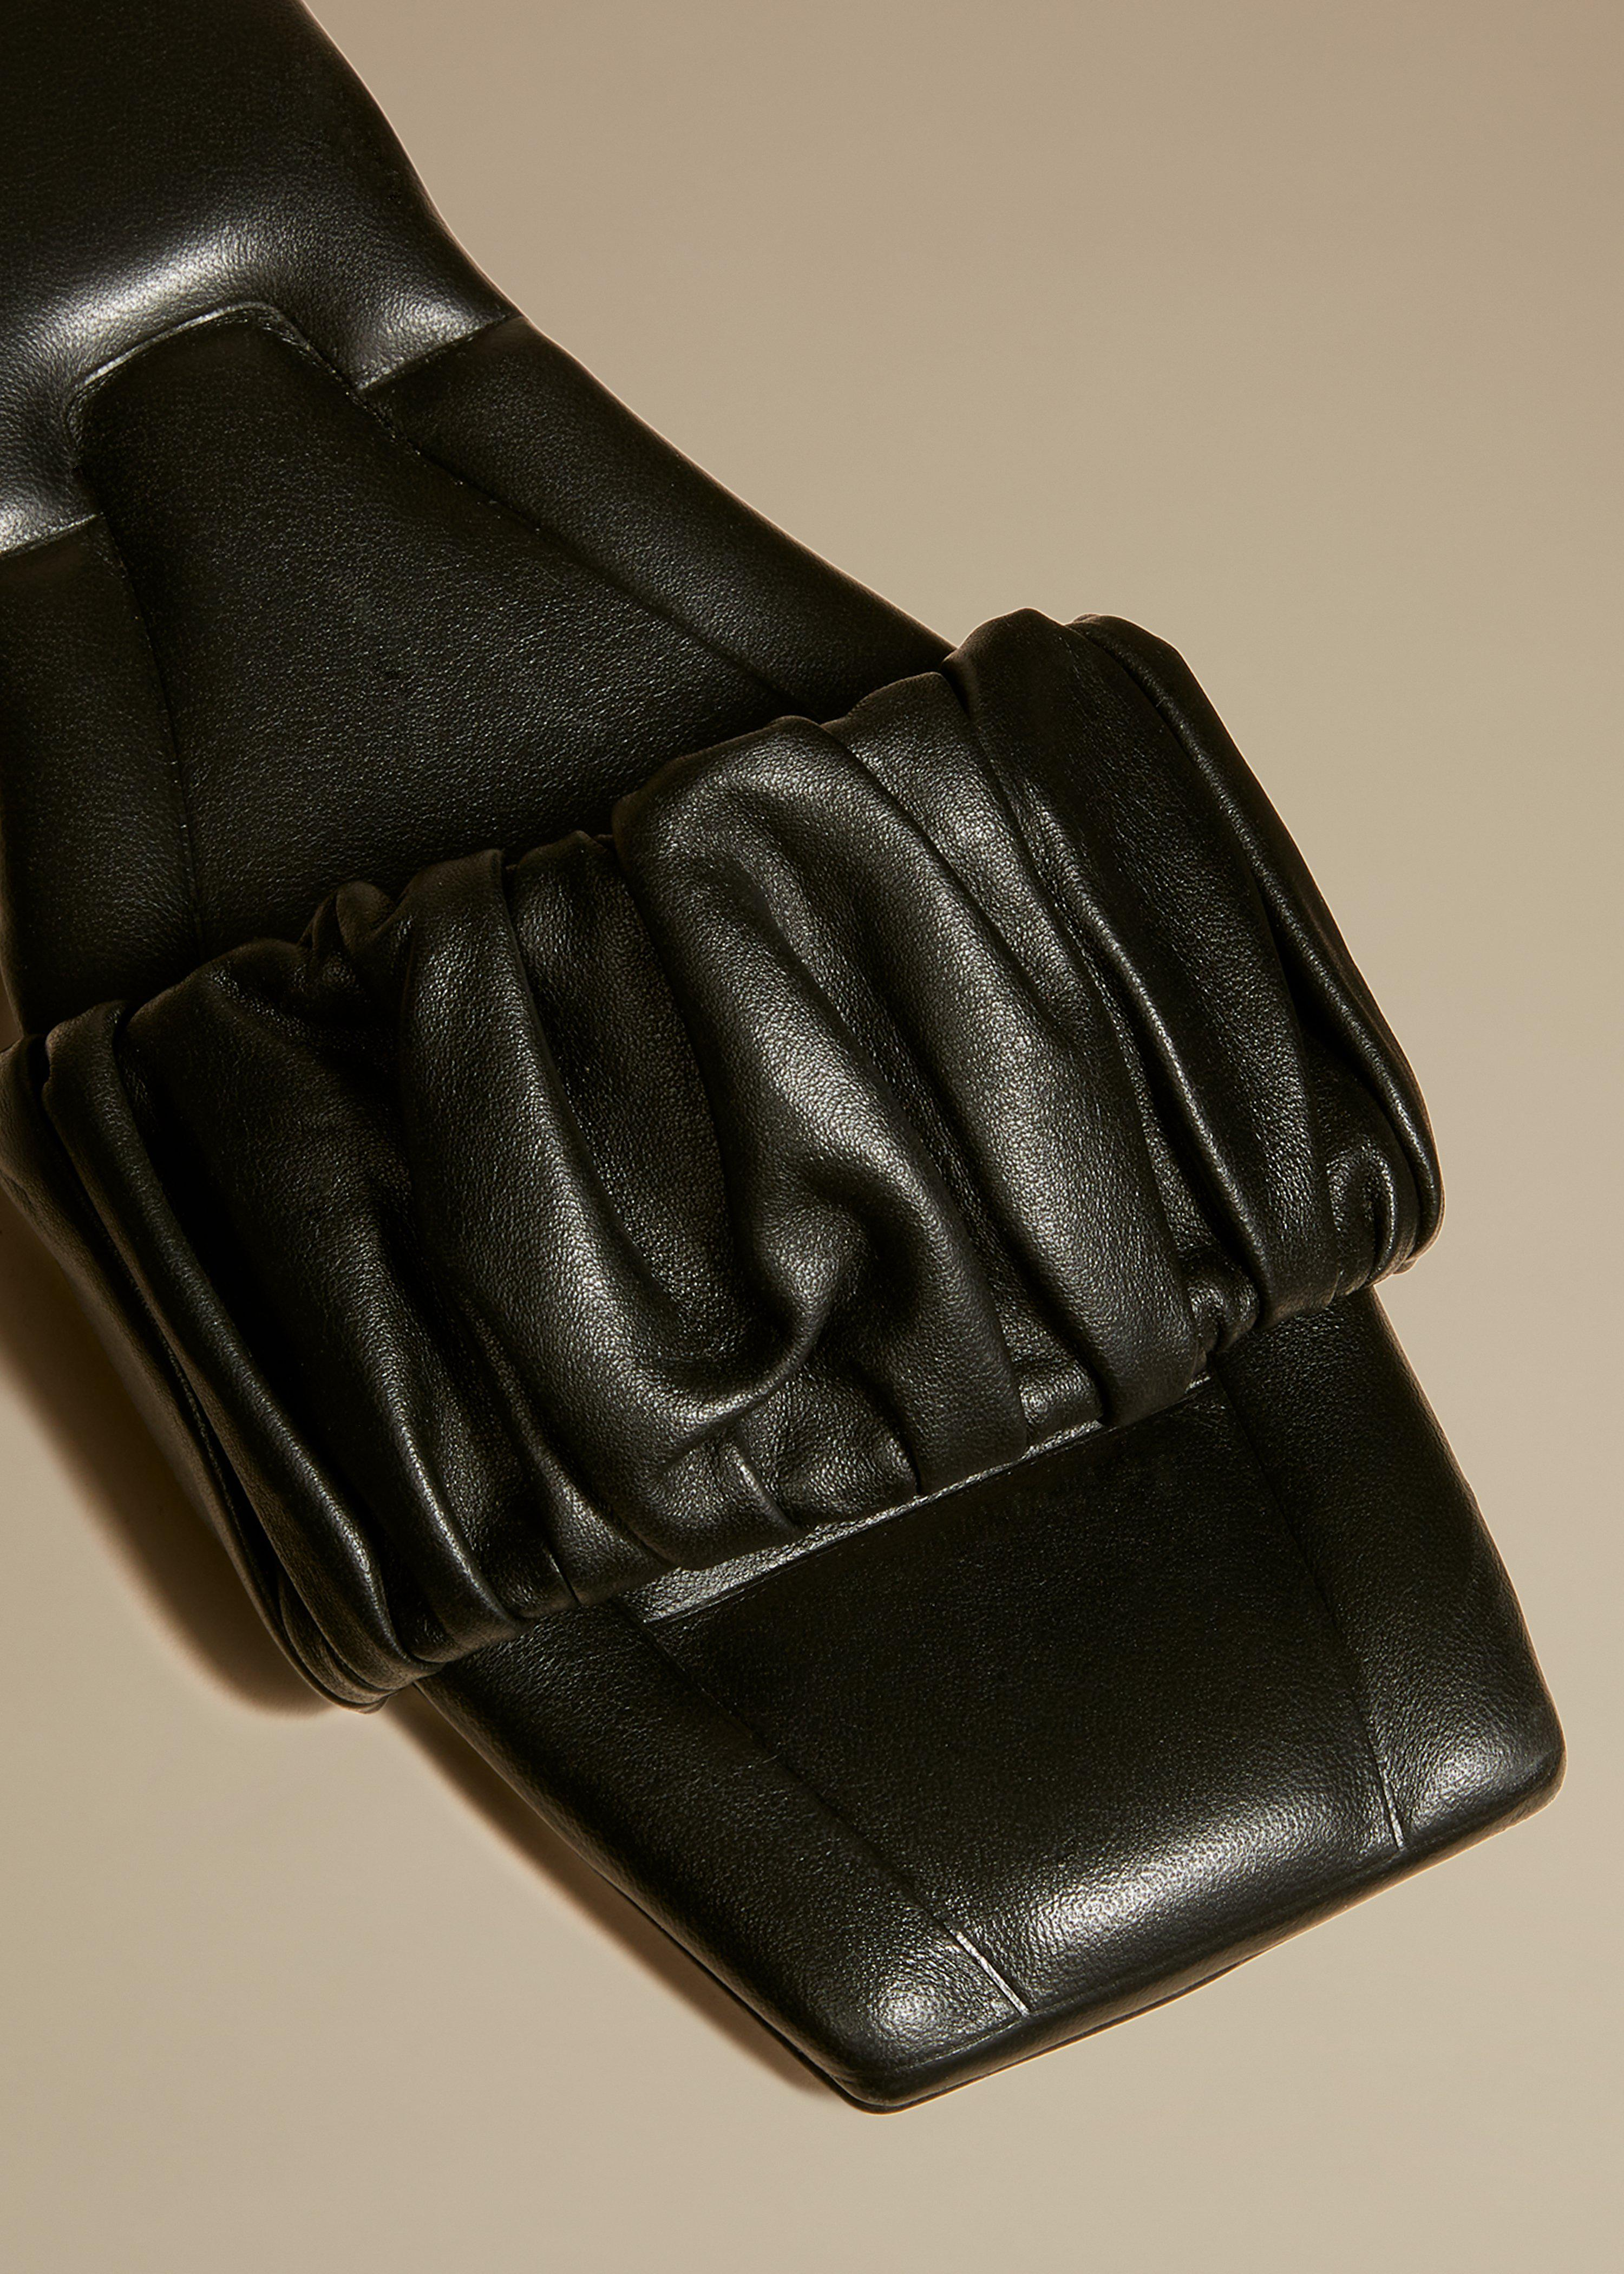 The Crete Flat in Black Leather 2